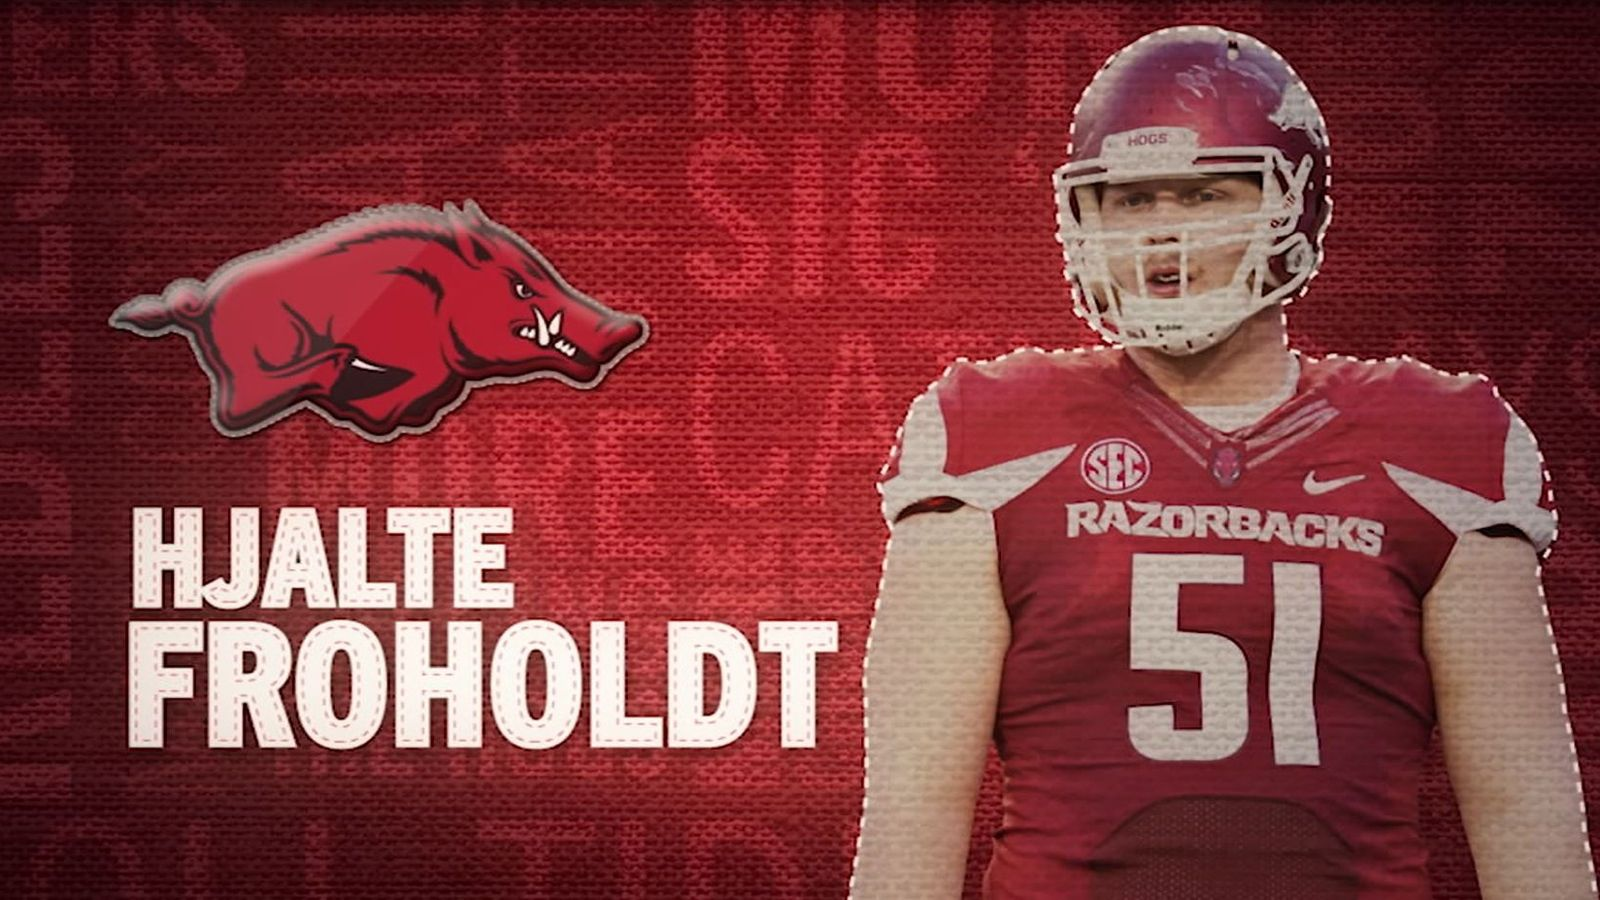 I am the SEC: Arkansas' Hjalte Froholdt